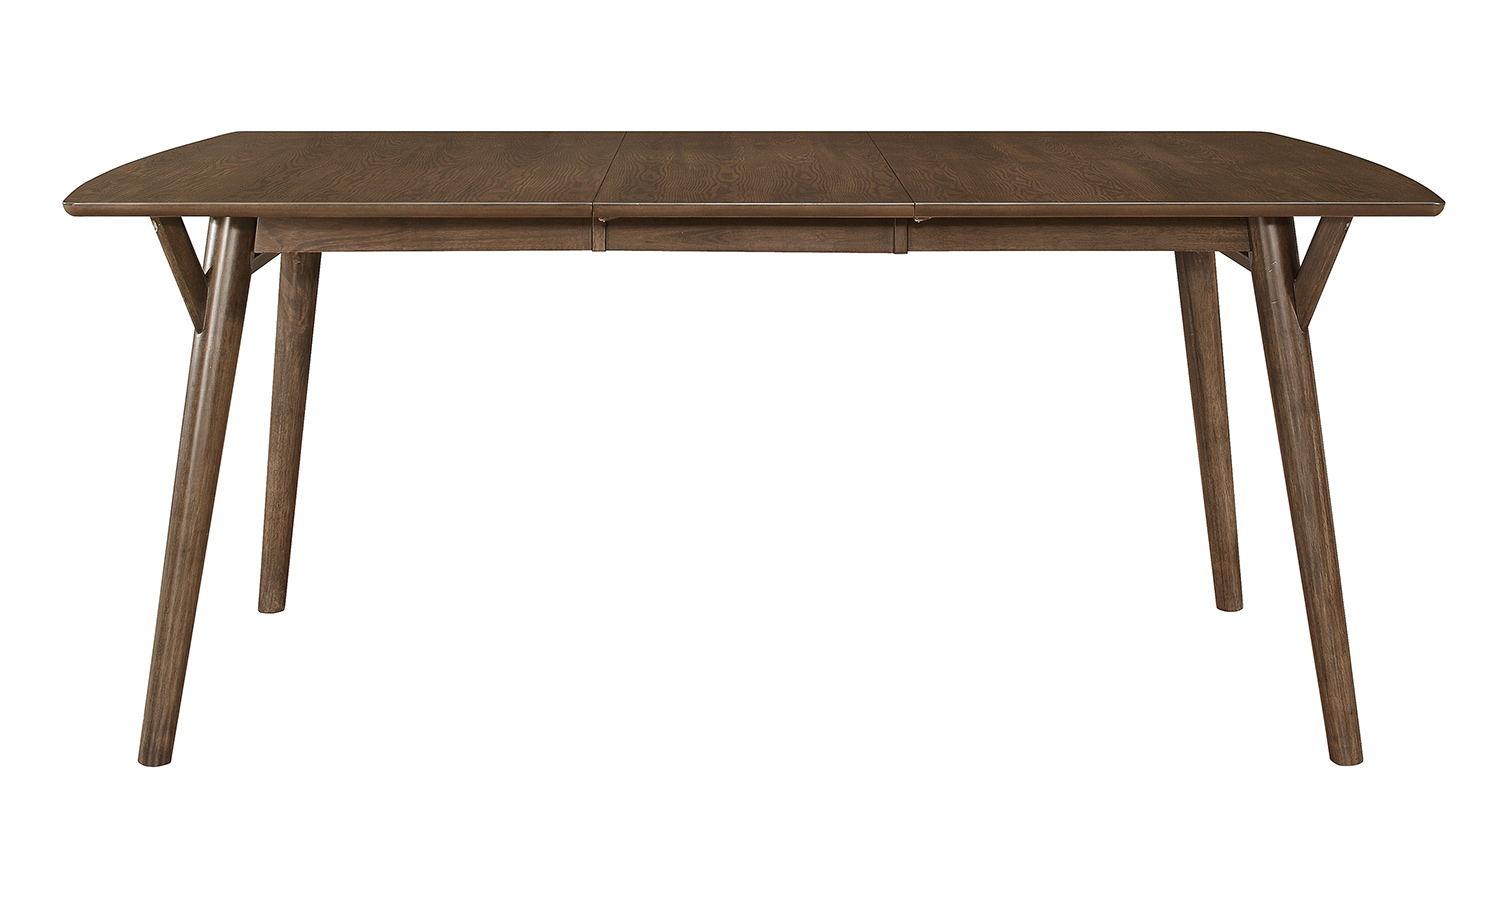 Homelegance Stratus Dining Table - Dark